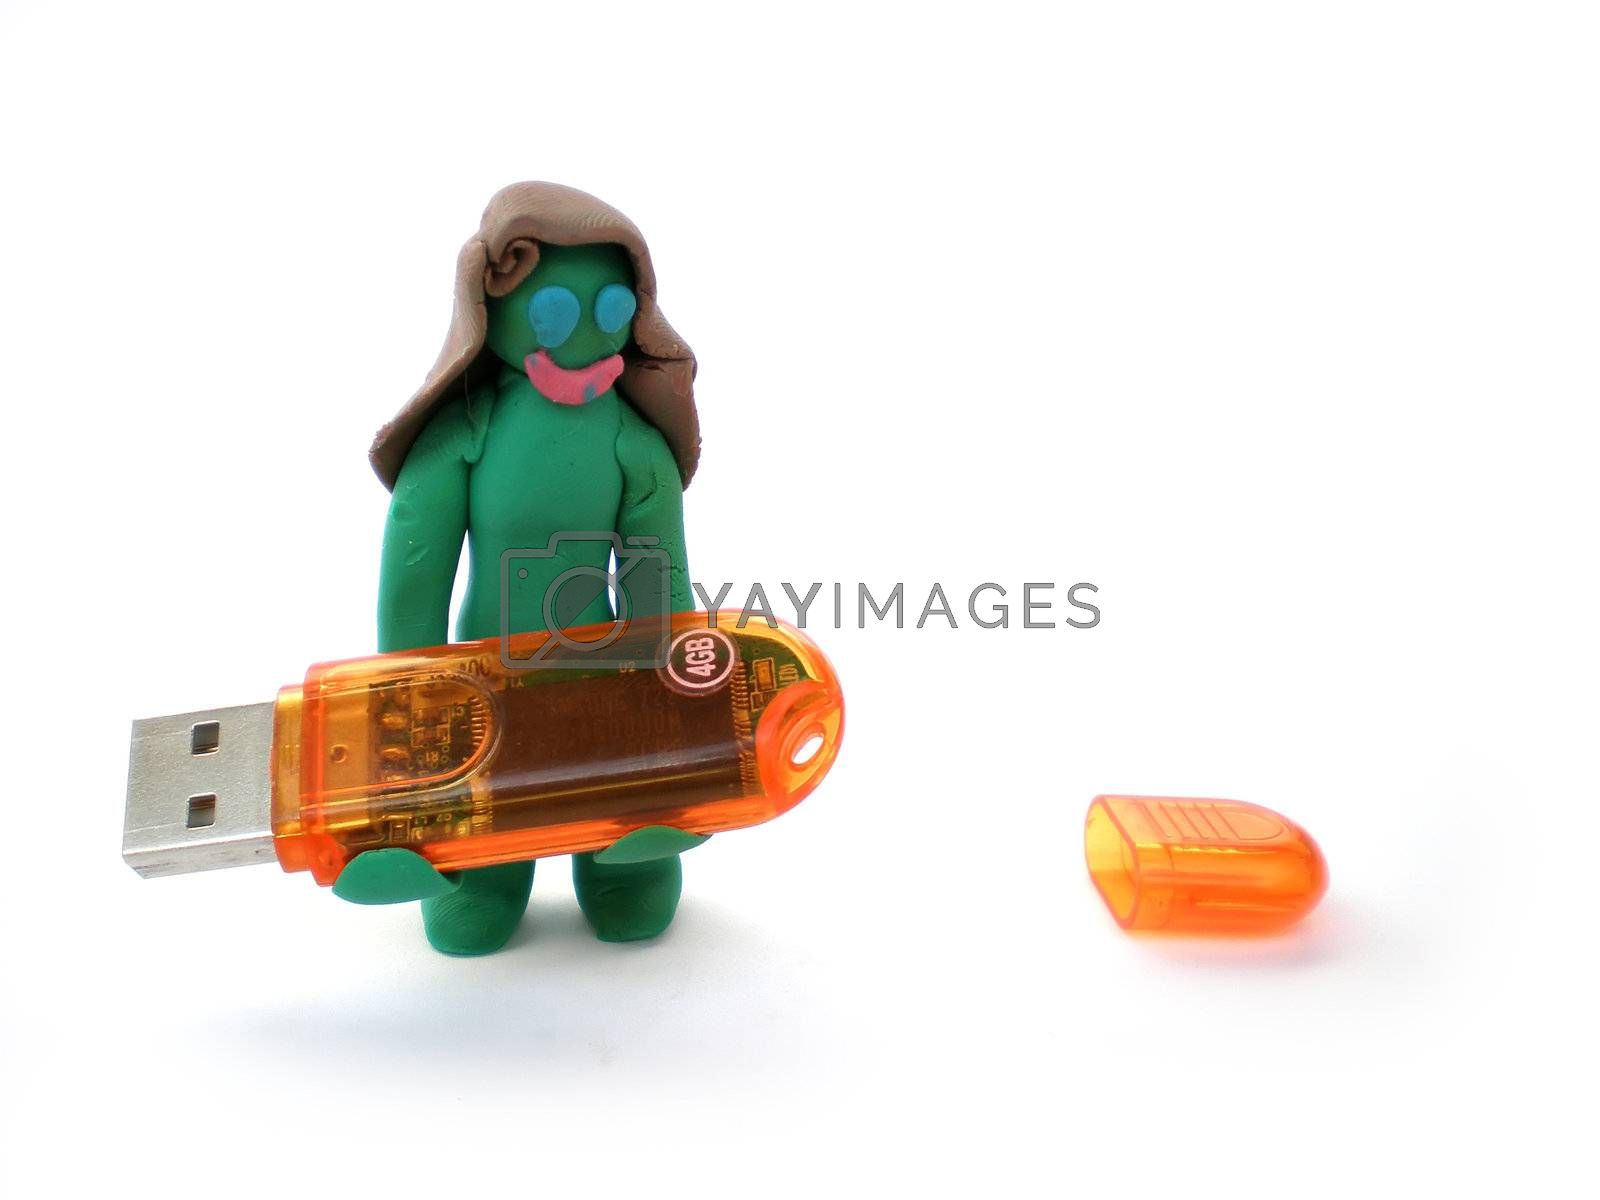 plasticine figure of a green woman carry a usb flash